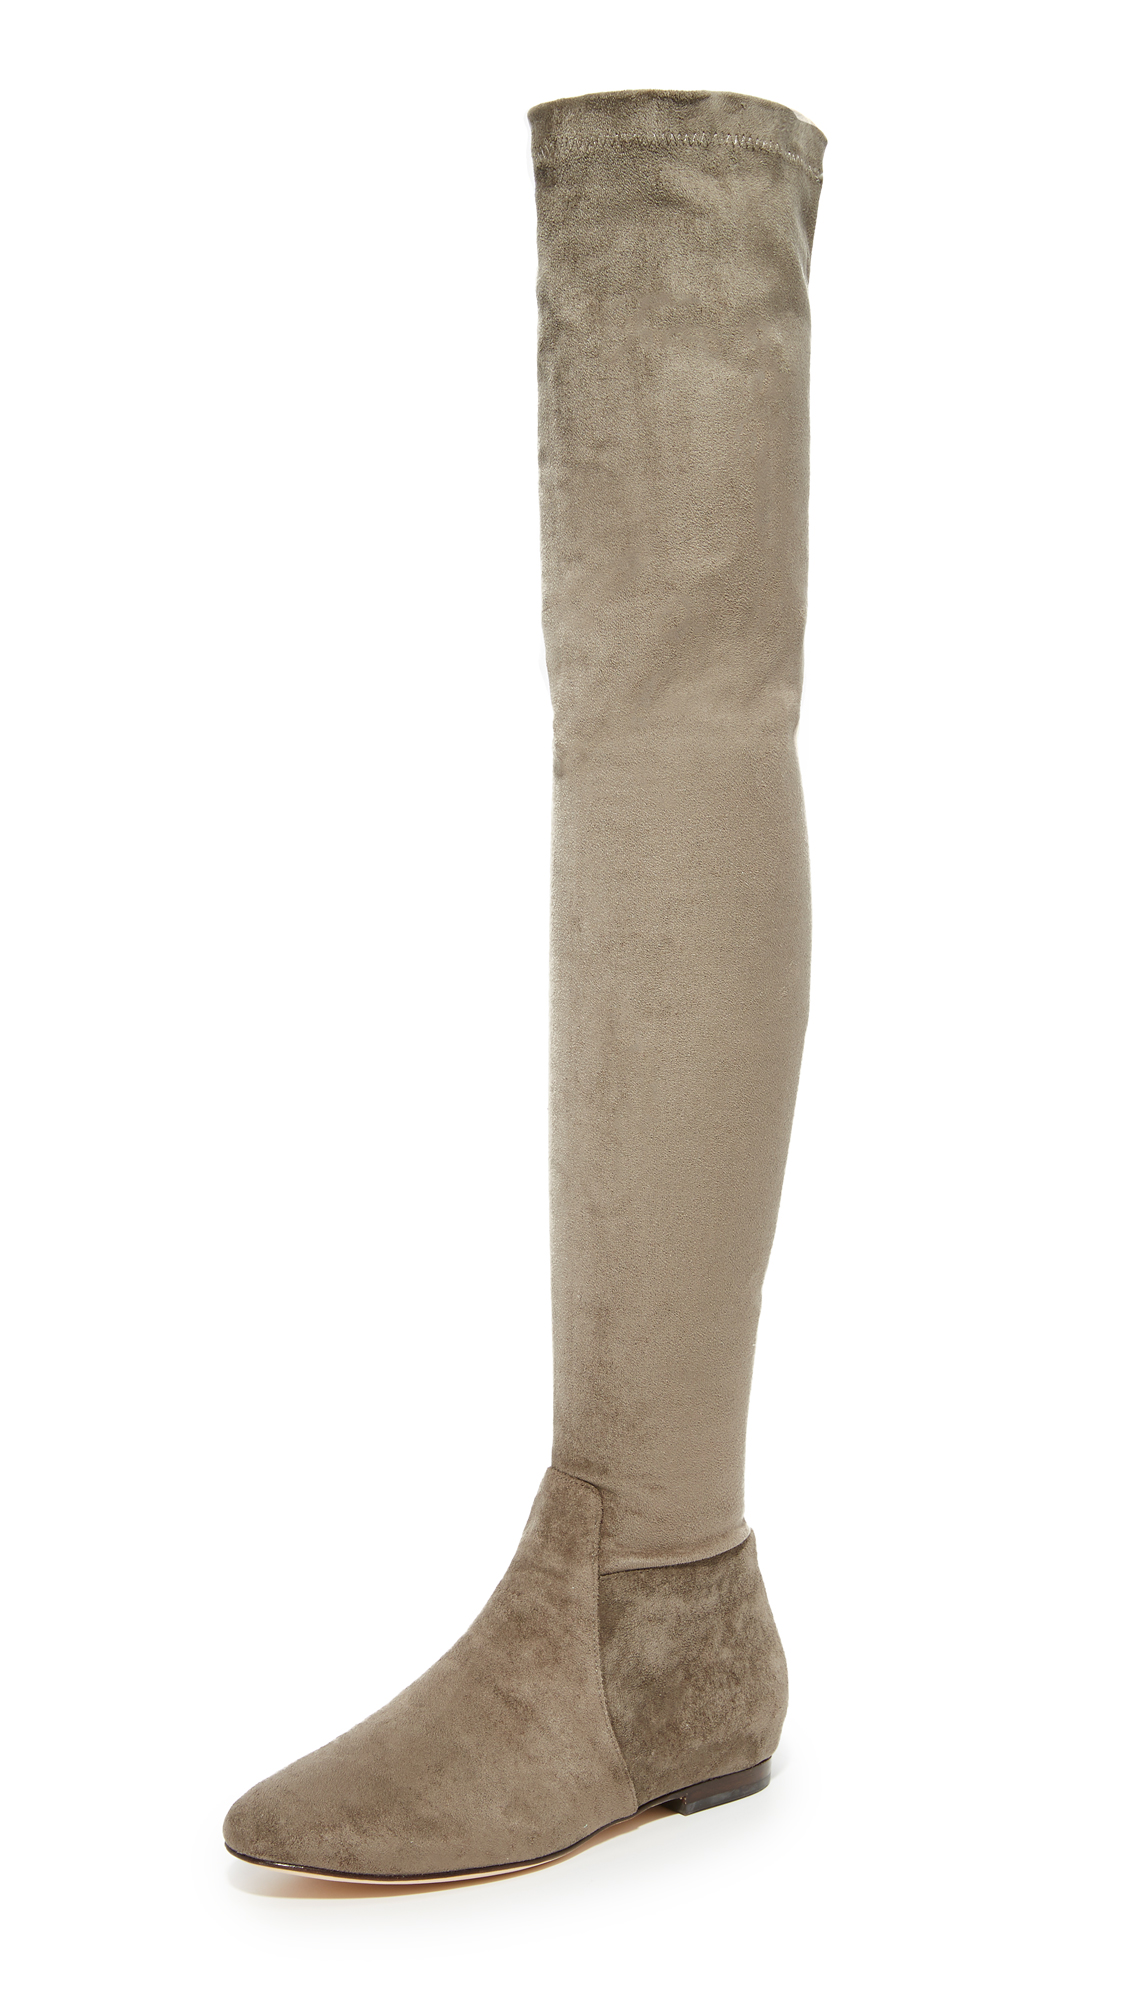 Joie Hayleigh Over The Knee Boots - Graphite